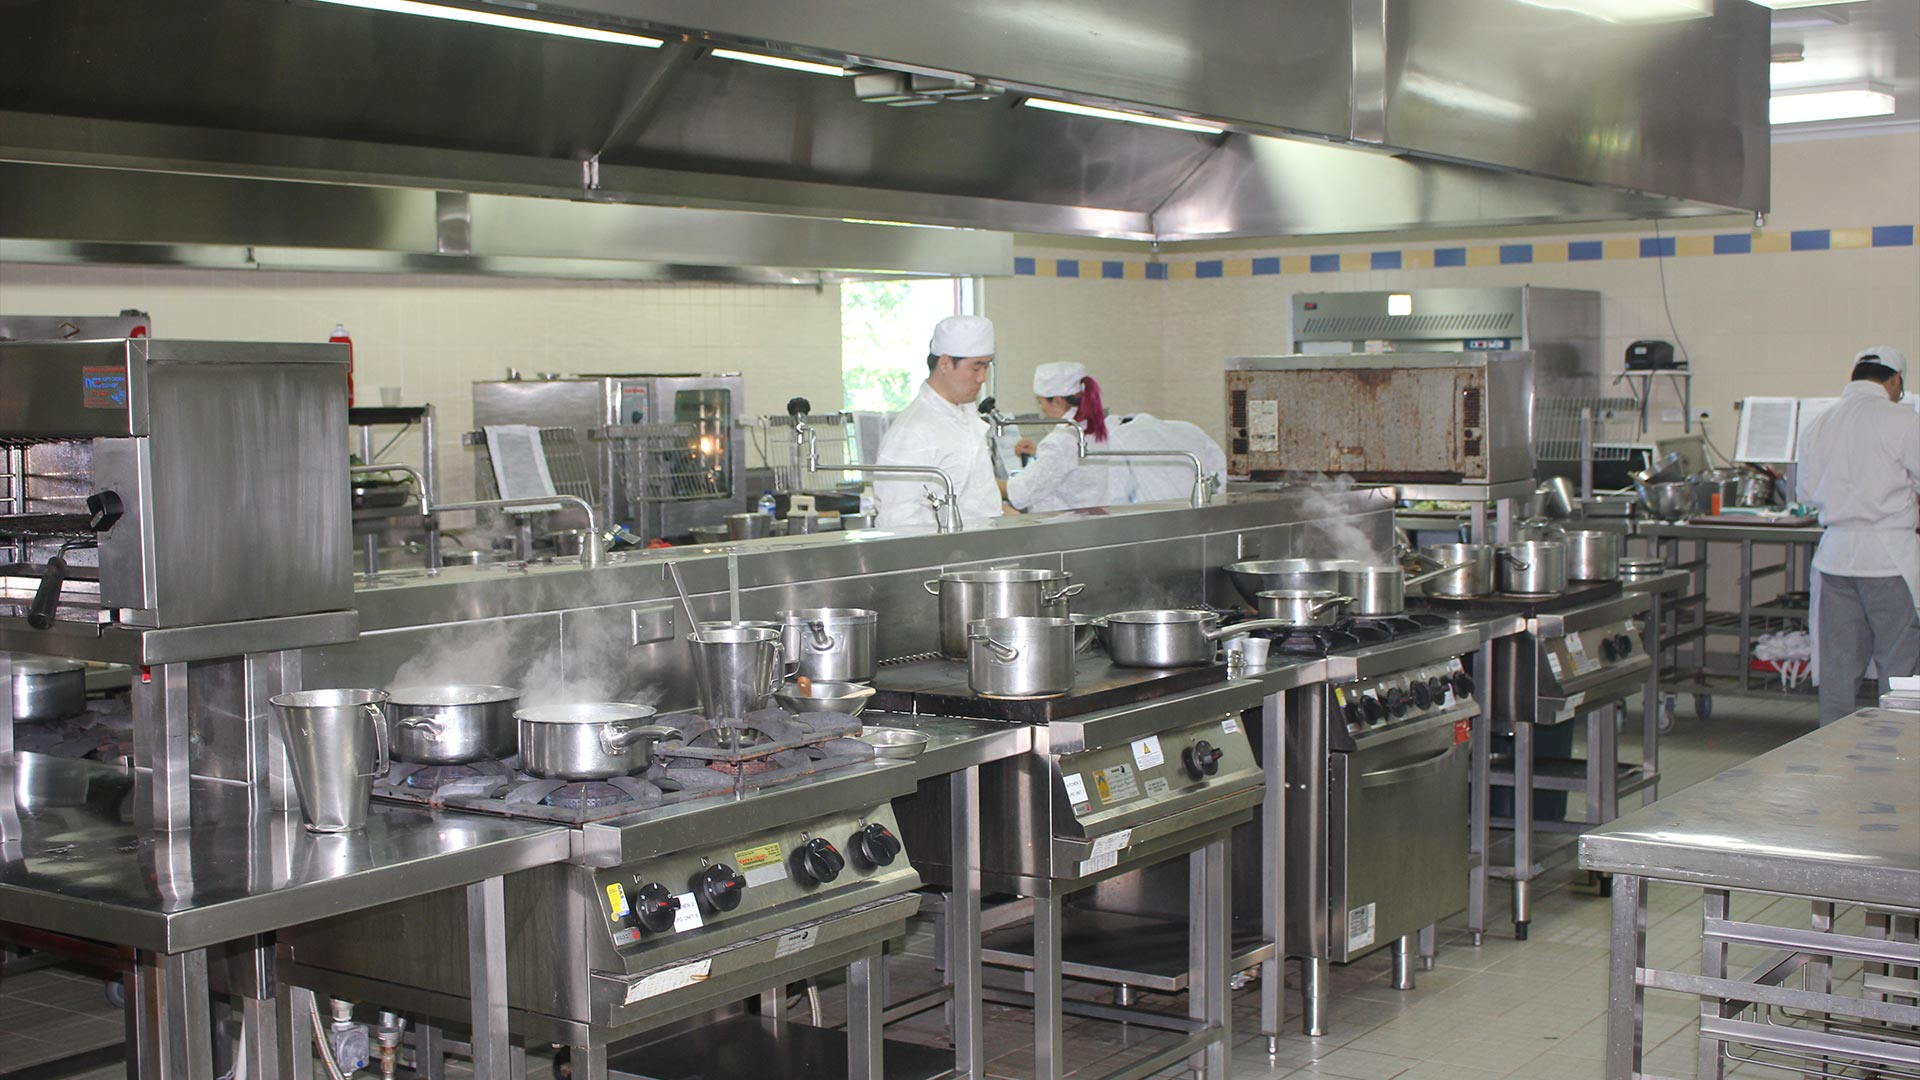 cairns-facilities-hospitality-hubs-commericial-kitchens-01.jpg